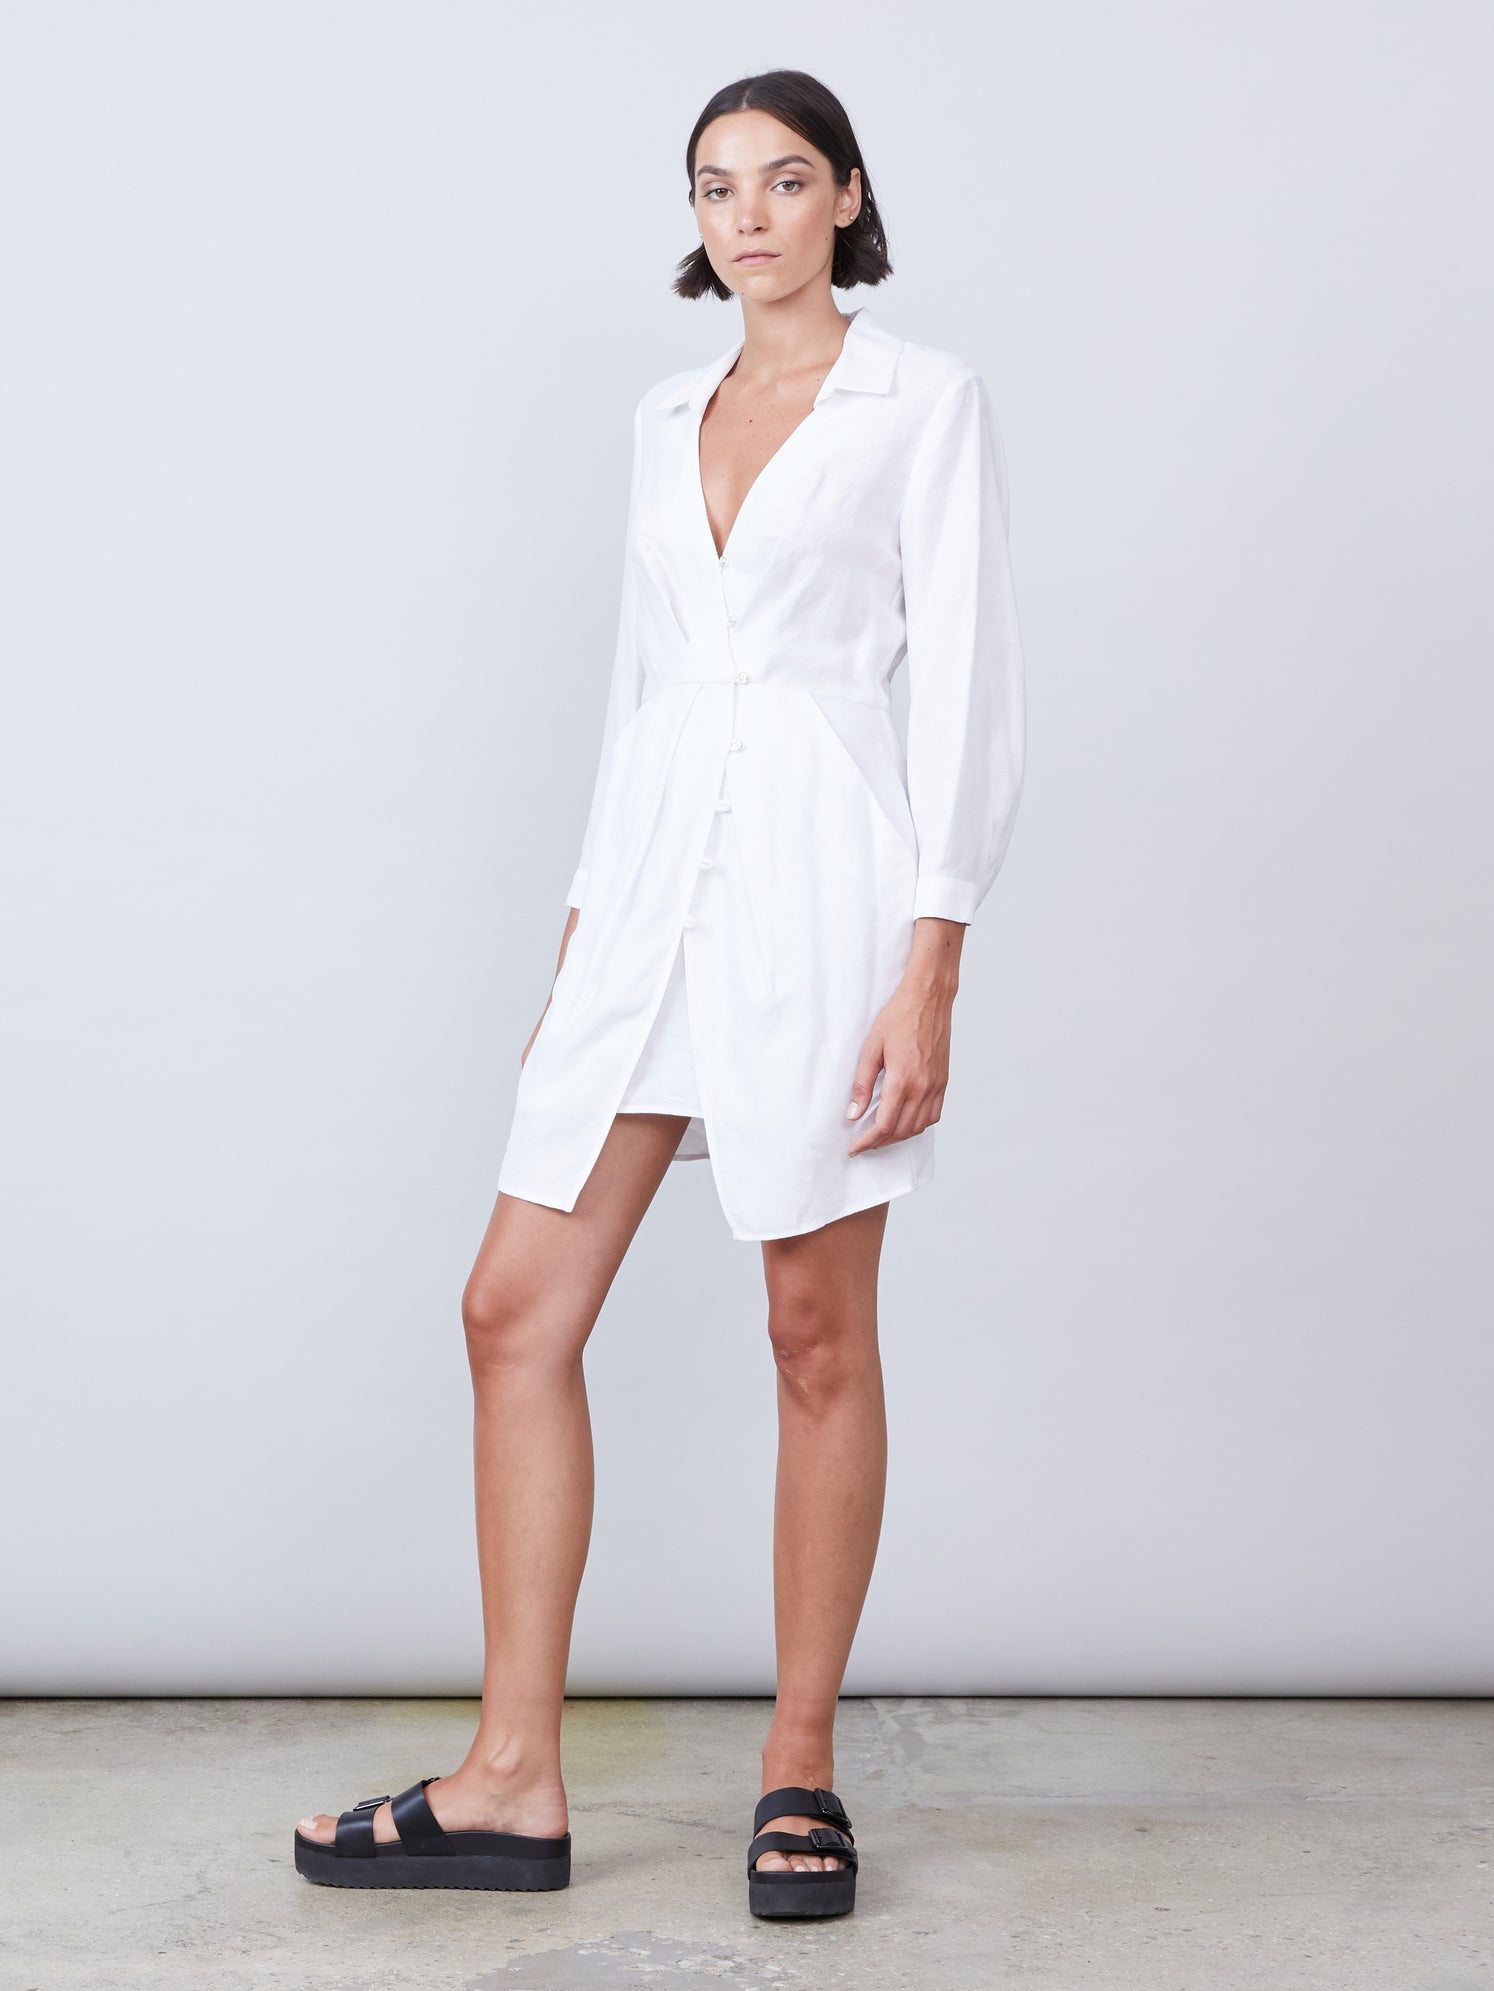 Linen dress with 3/4 sleeves and open collared front with optional slip